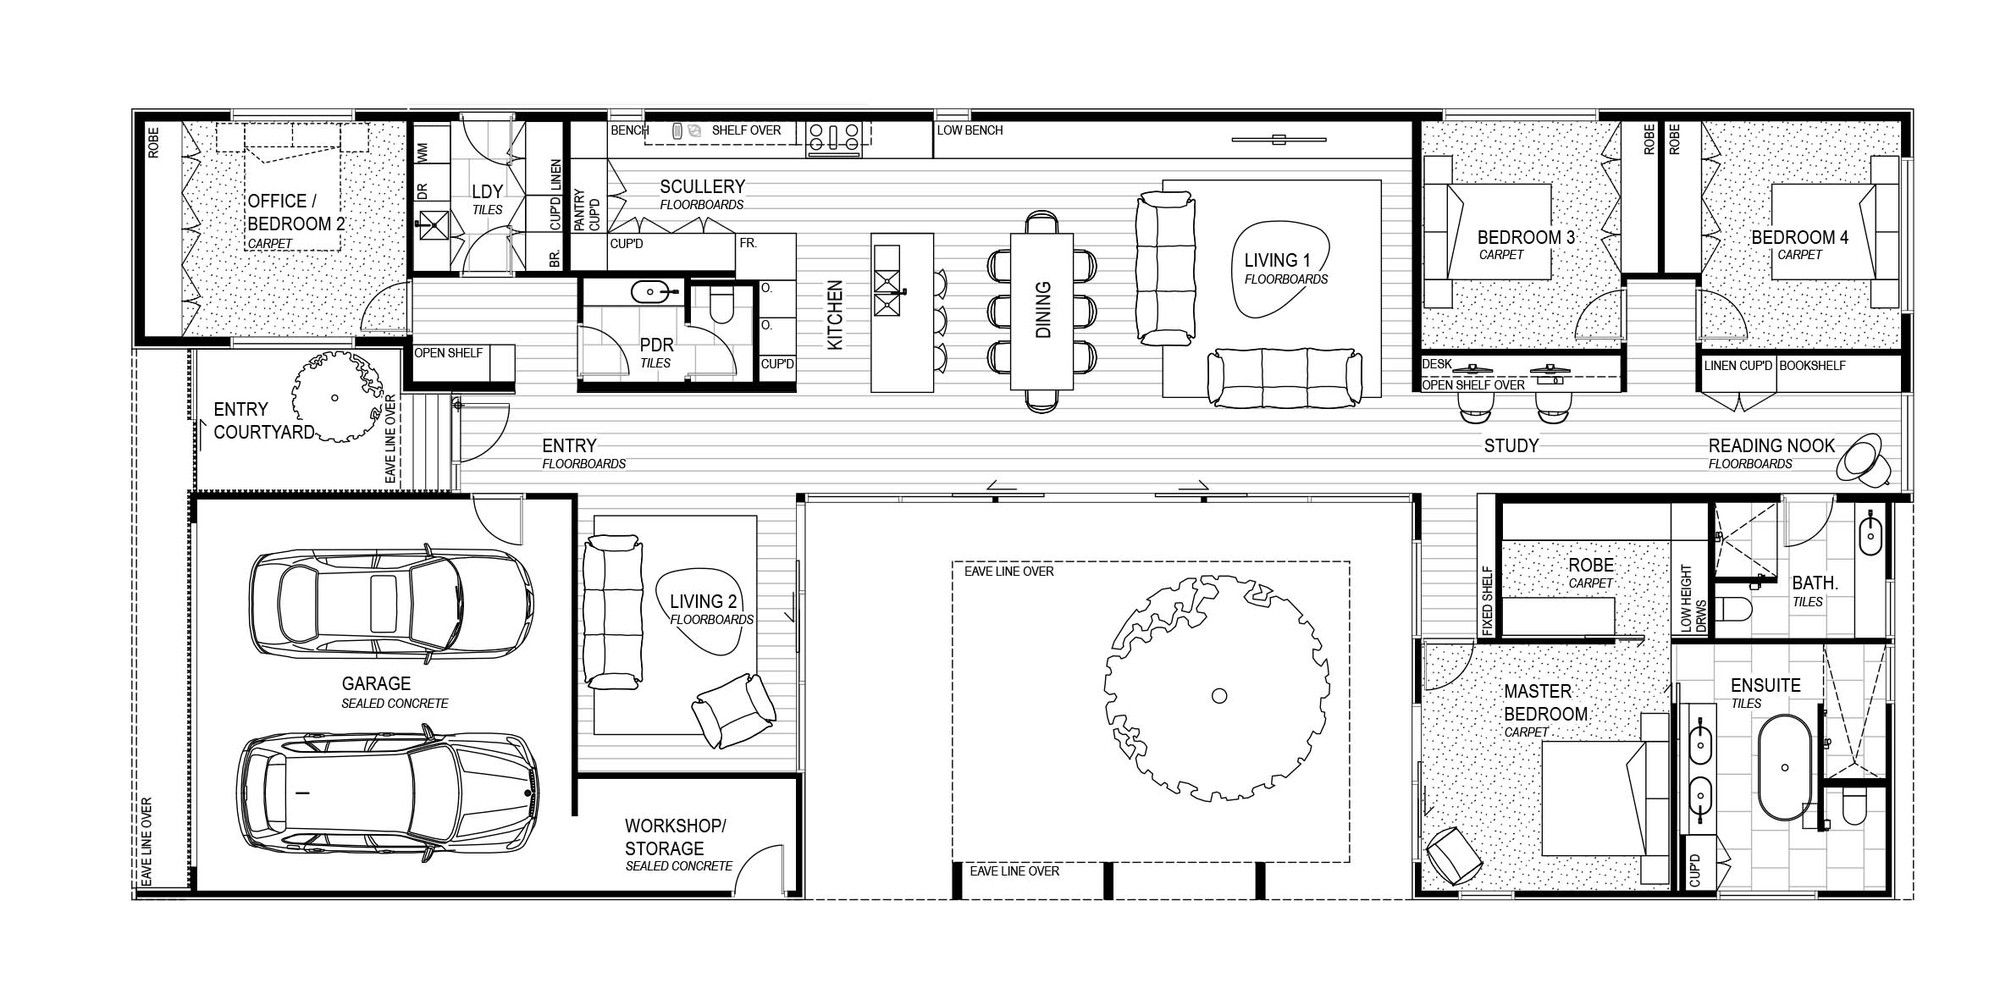 Gallery Of The Courtyard House Auhaus Architecture 44 Courtyard House Courtyard House Plans Modern Courtyard